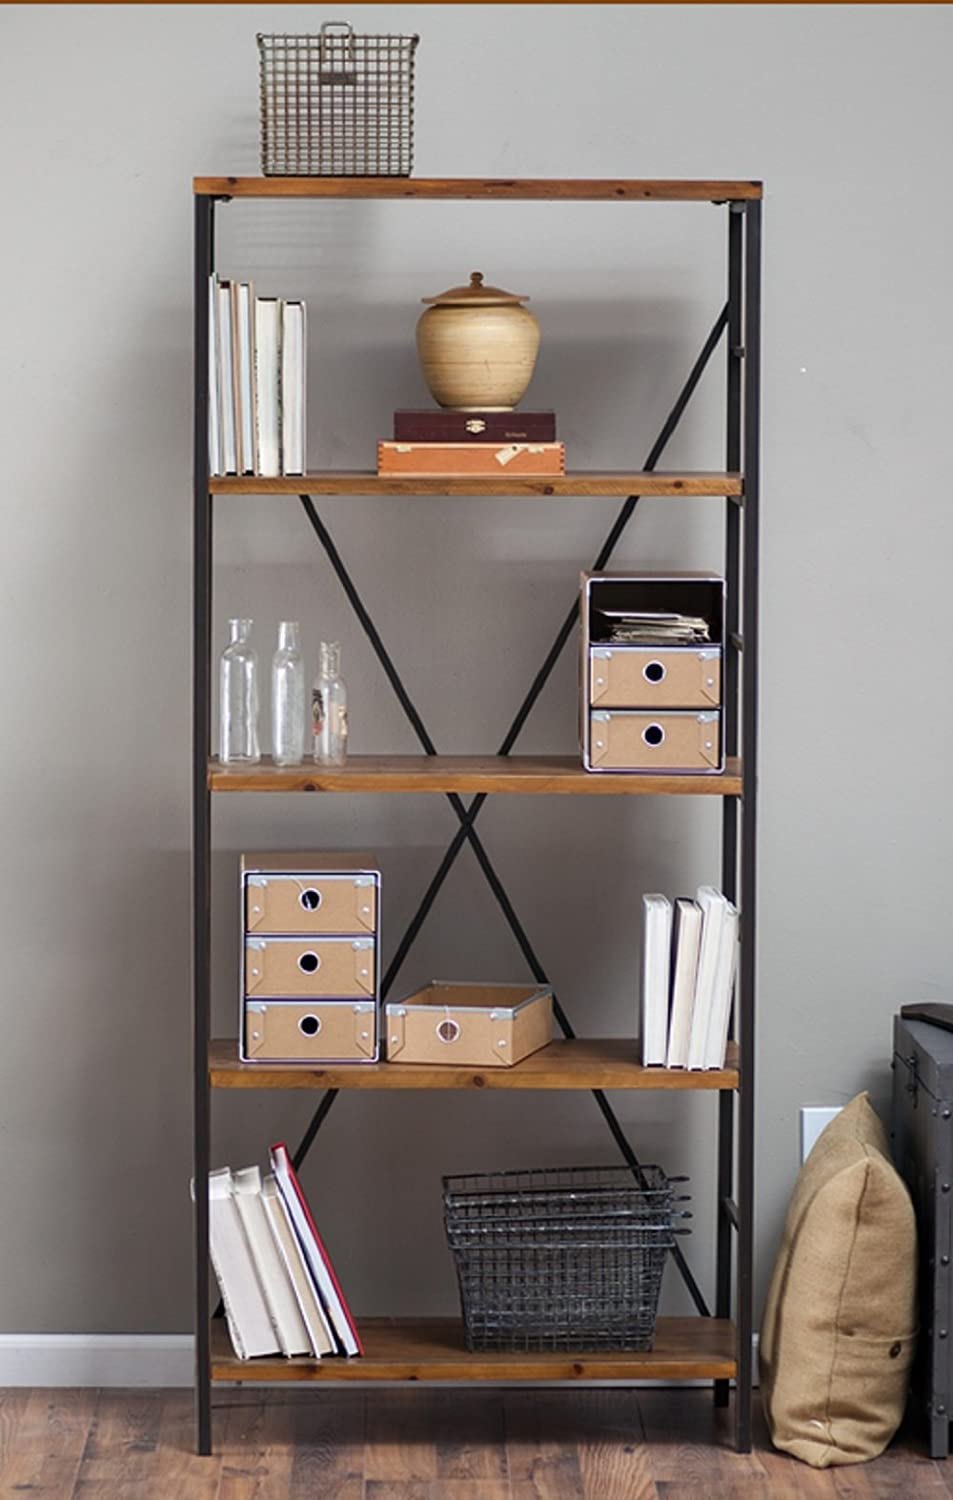 Rustic Wood Bookcase with Adjustable Shelves Featuring an Industrial, Factory Look – 100 Satisfaction Guarantee